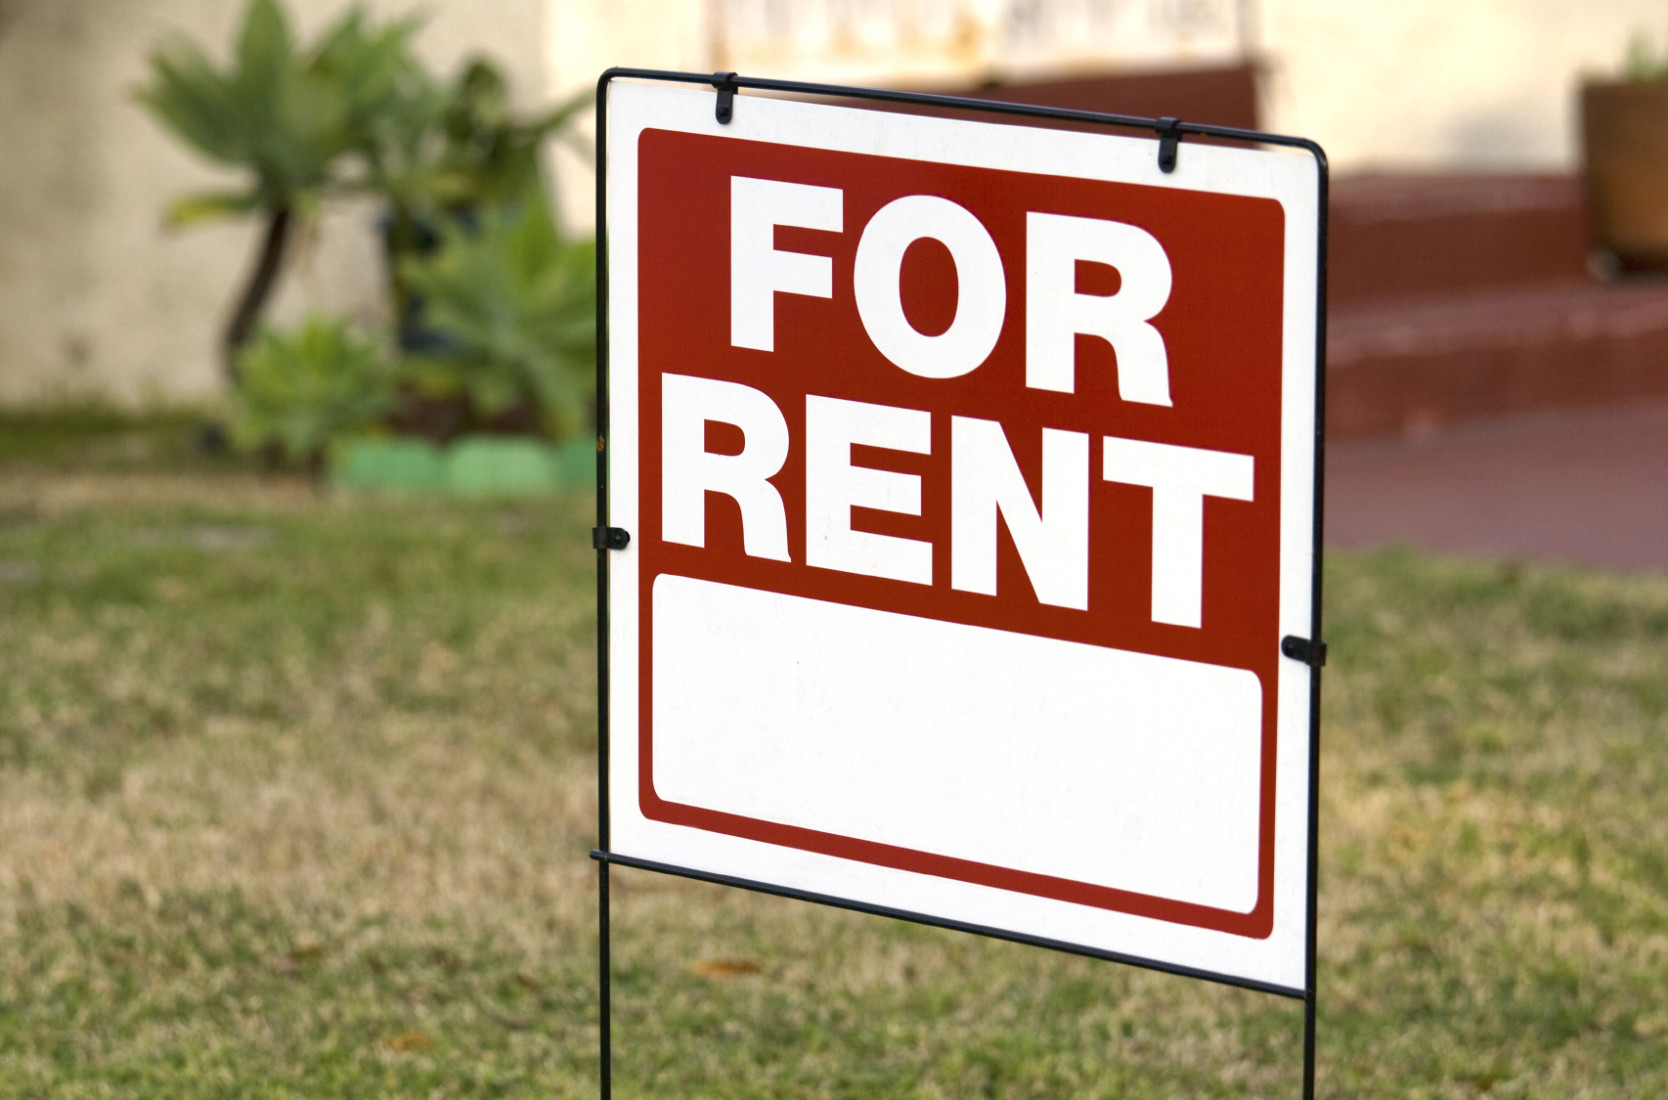 Q: How do property managers market rental properties?